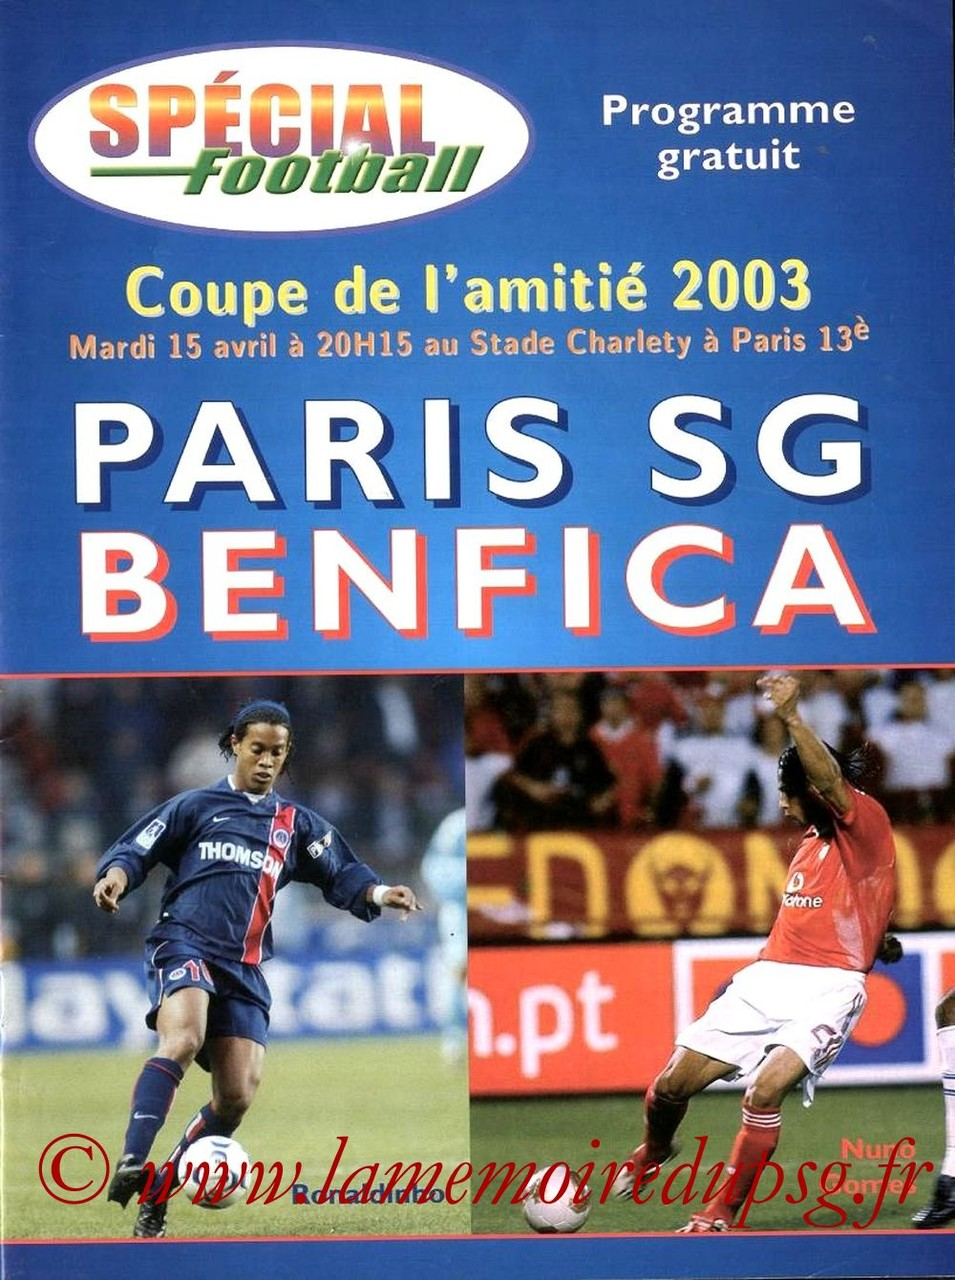 2003-04-15  PSG-Benfica (Coupe de l'amitie 2003 au Stade Charlety, Special football)